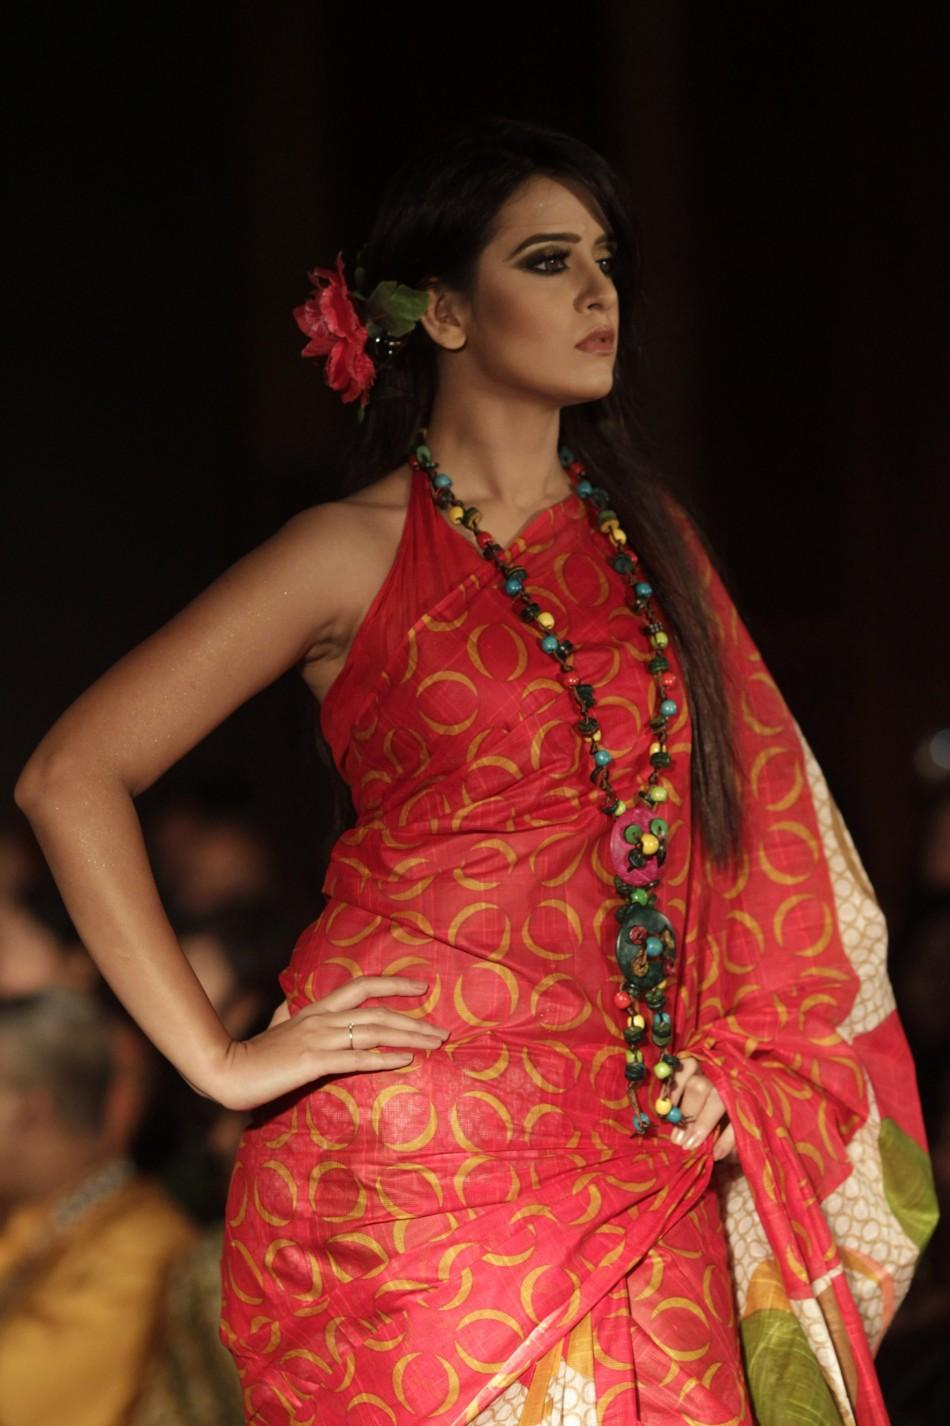 A model displays a creation by Bangladeshi label Anjan's during Dhaka Fashion Week in Dhaka